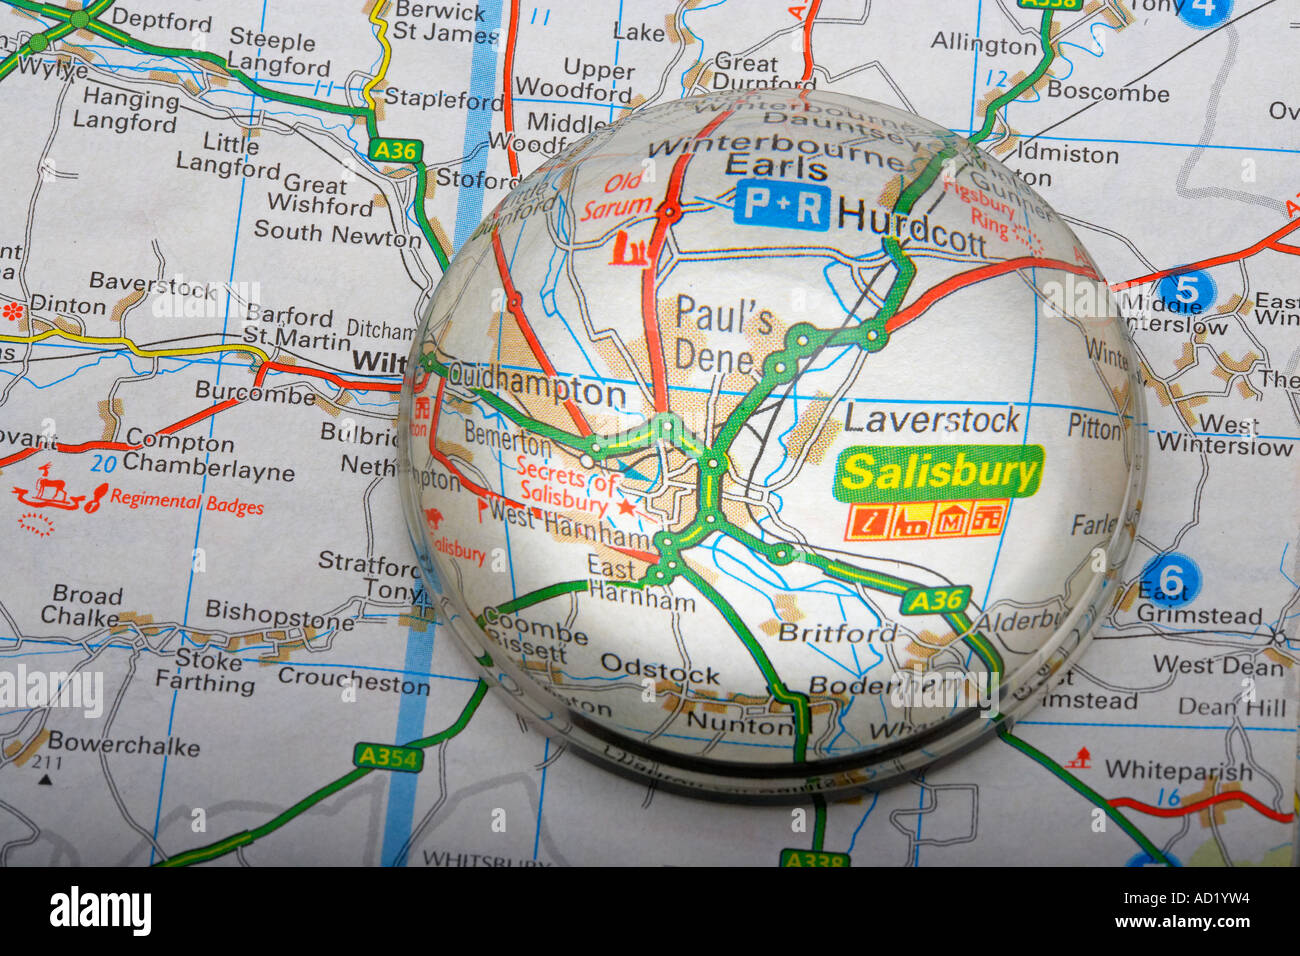 Magnified Map Area of Salisbury, England, UK Stock Photo: 7587283